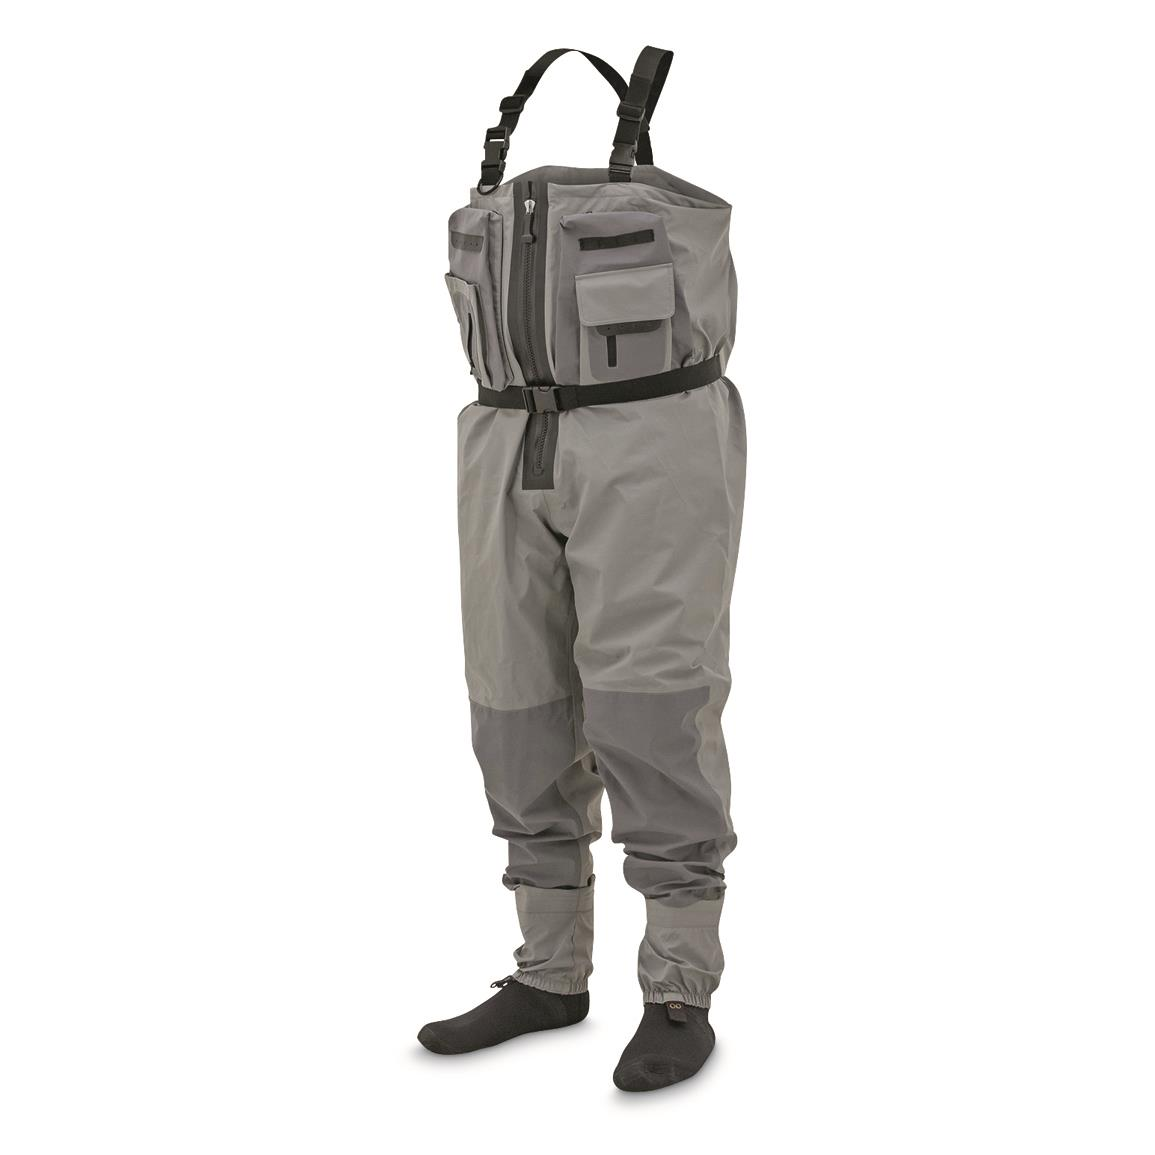 frogg toggs Sierran Transition Z Breathable Zip-Front Stockingfoot Chest Waders, Slate Gray